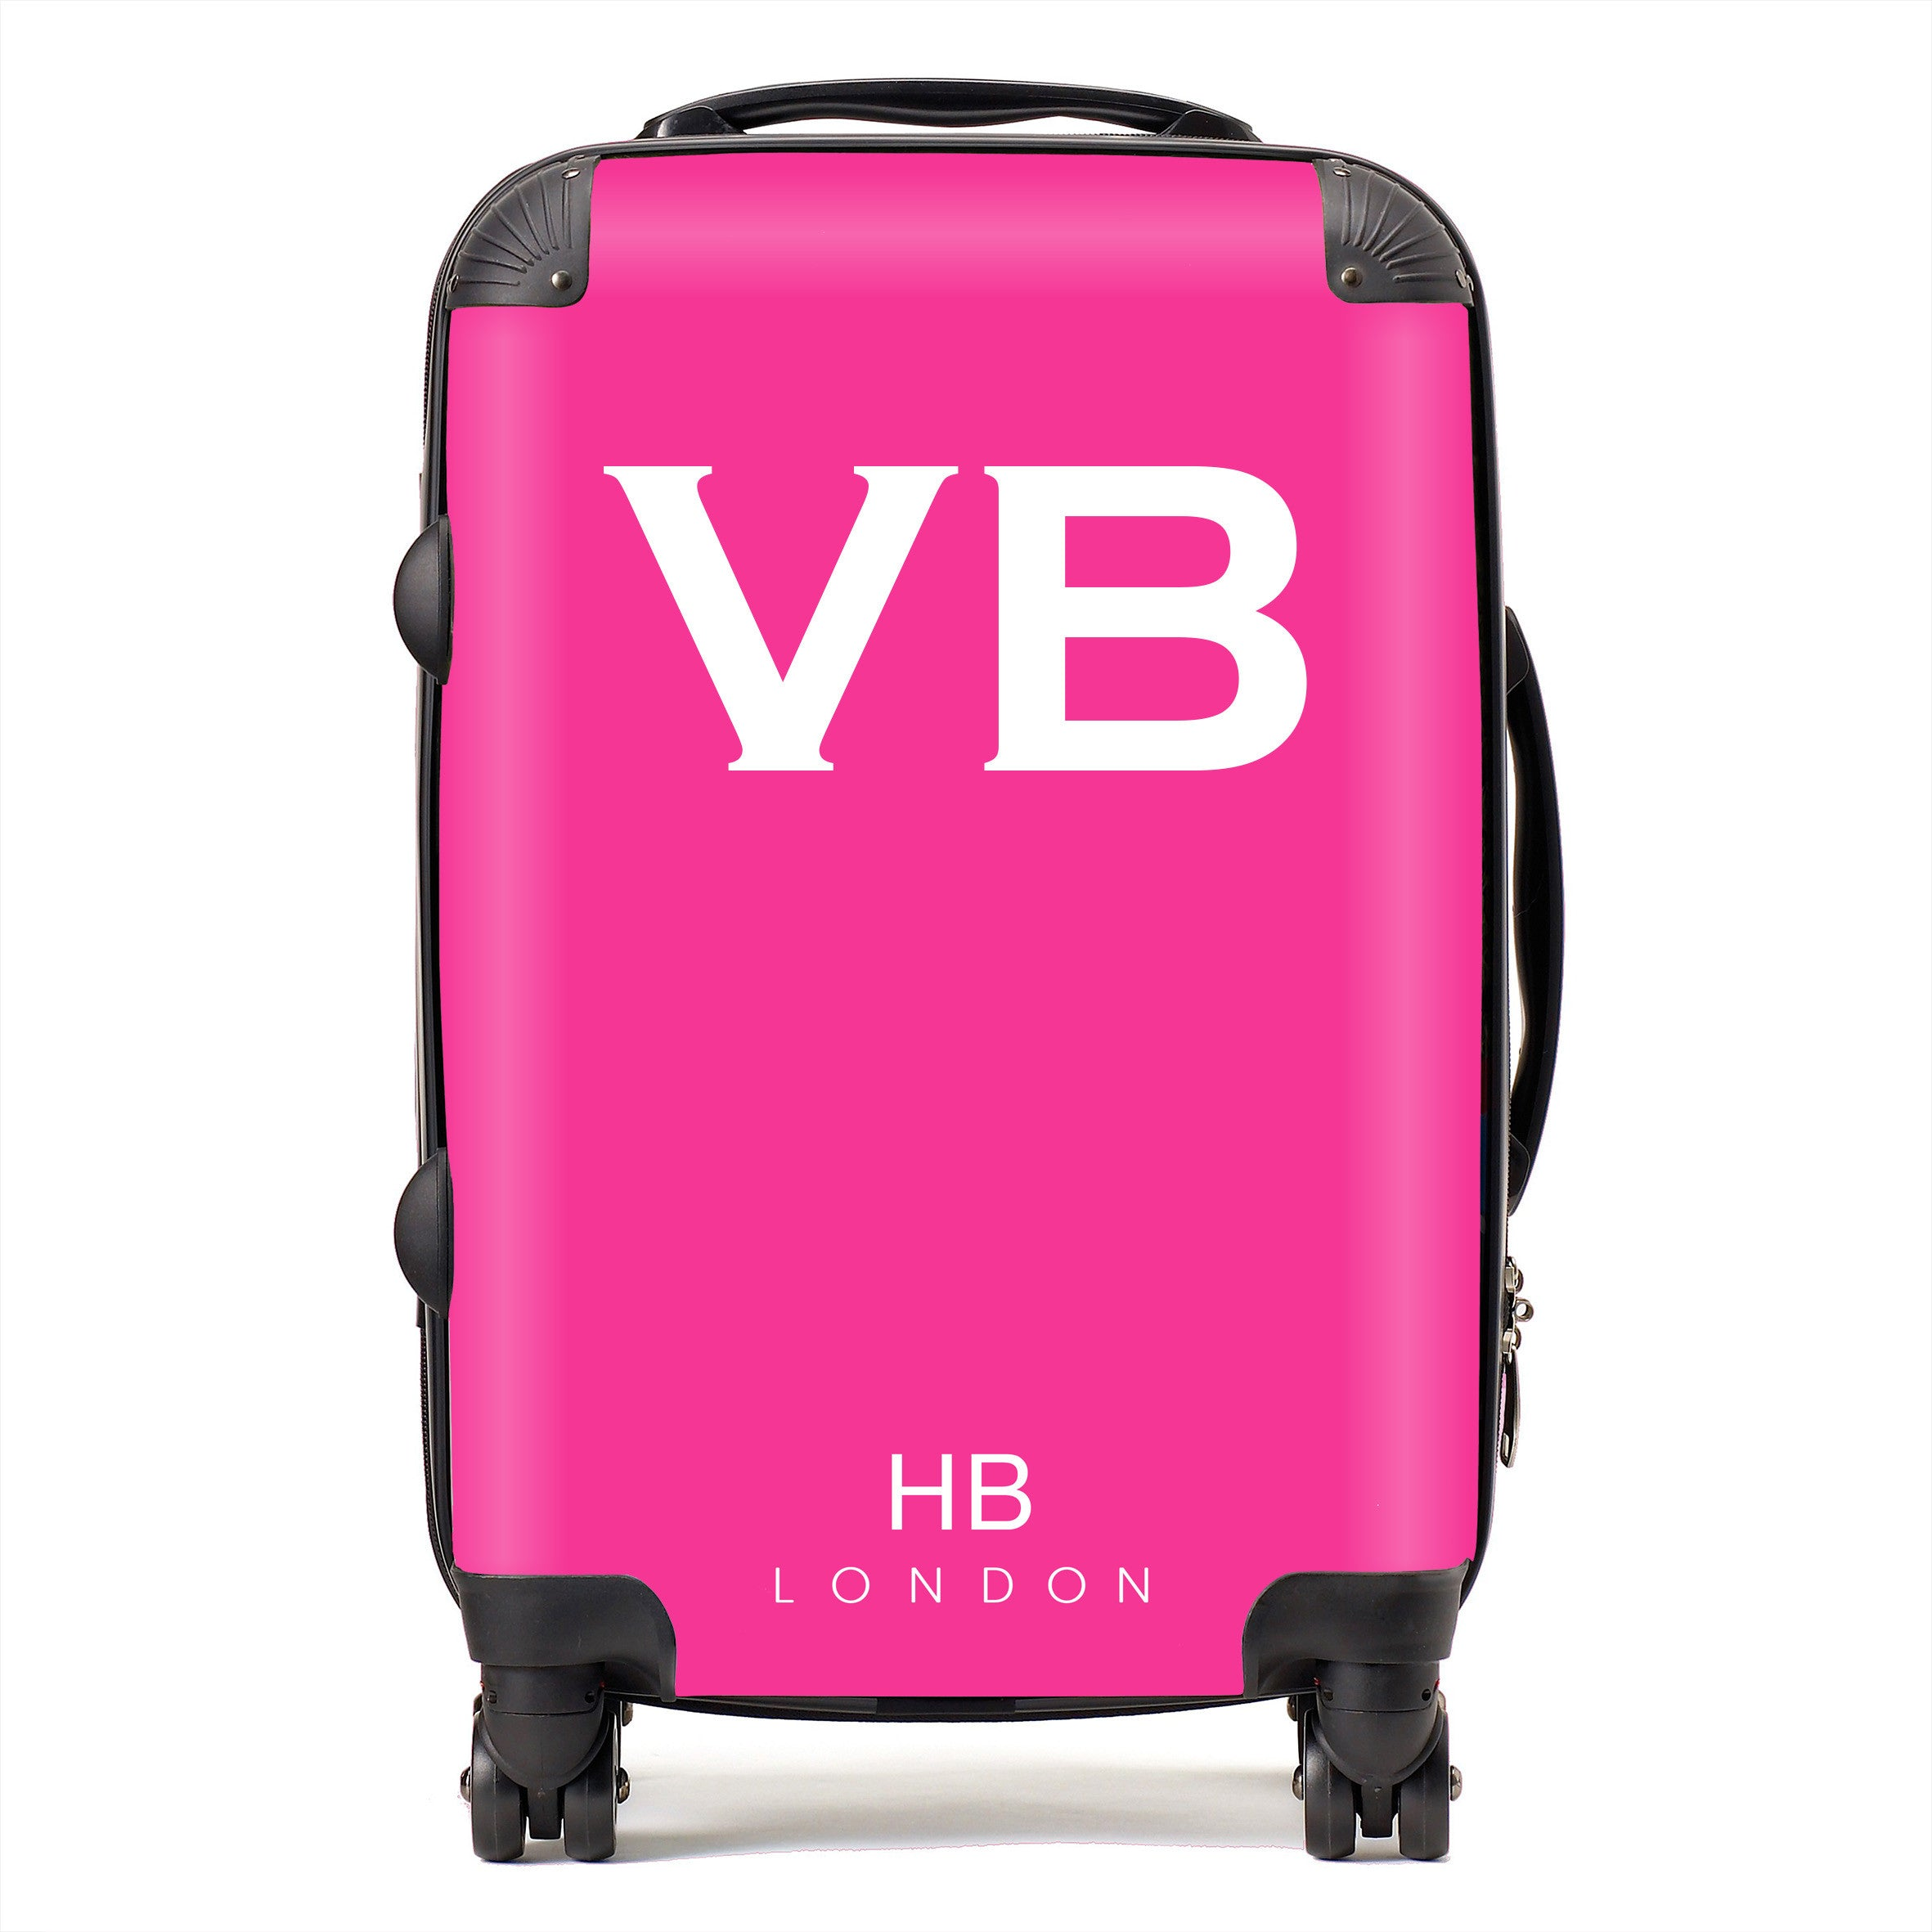 HB LONDON - The ORIGINAL Initial Suitcases | Personalised Luggage